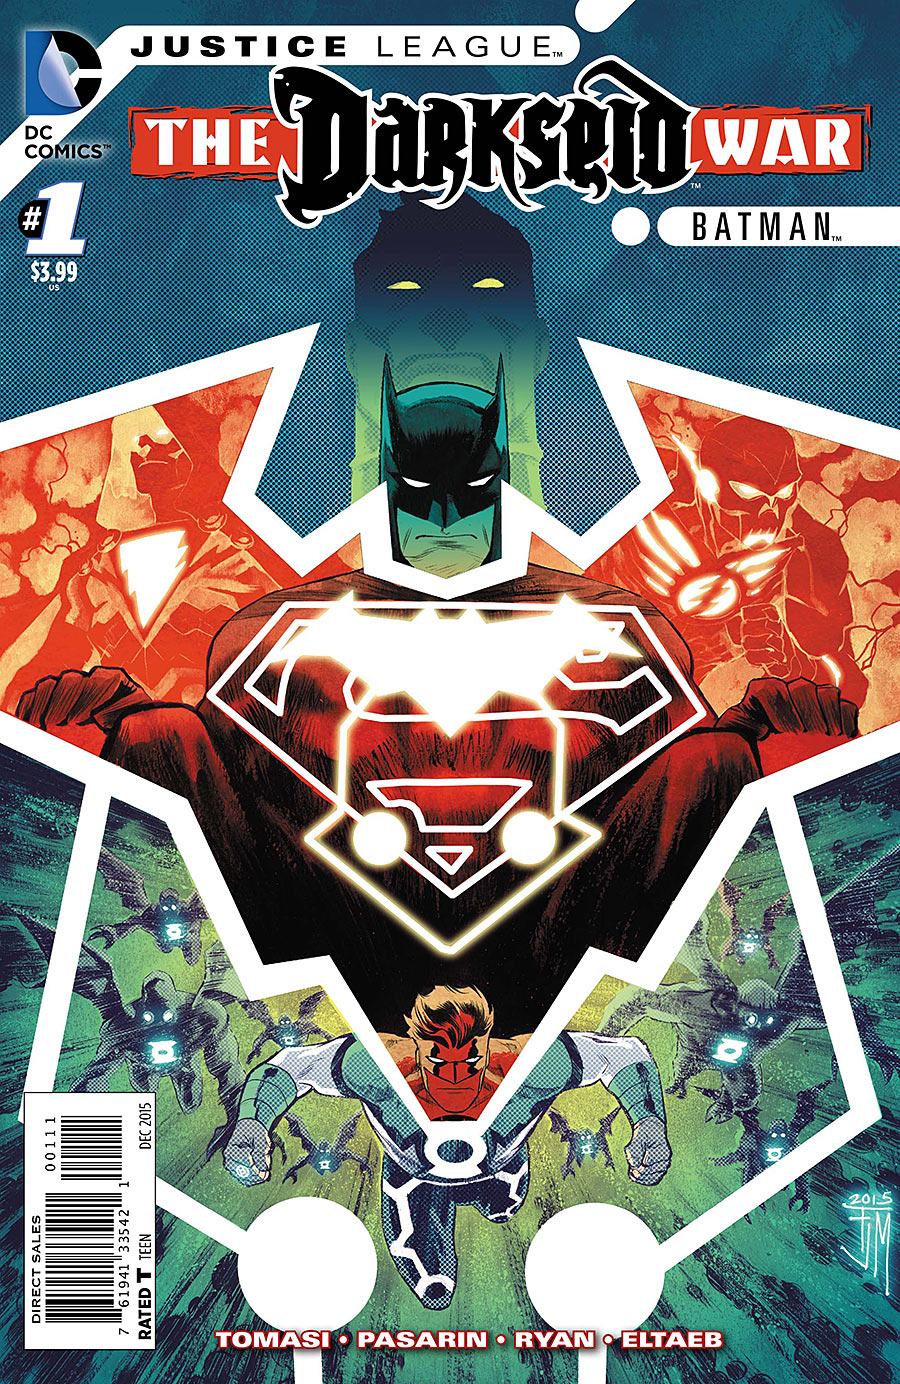 Justice League: The Darkseid War Vol 1